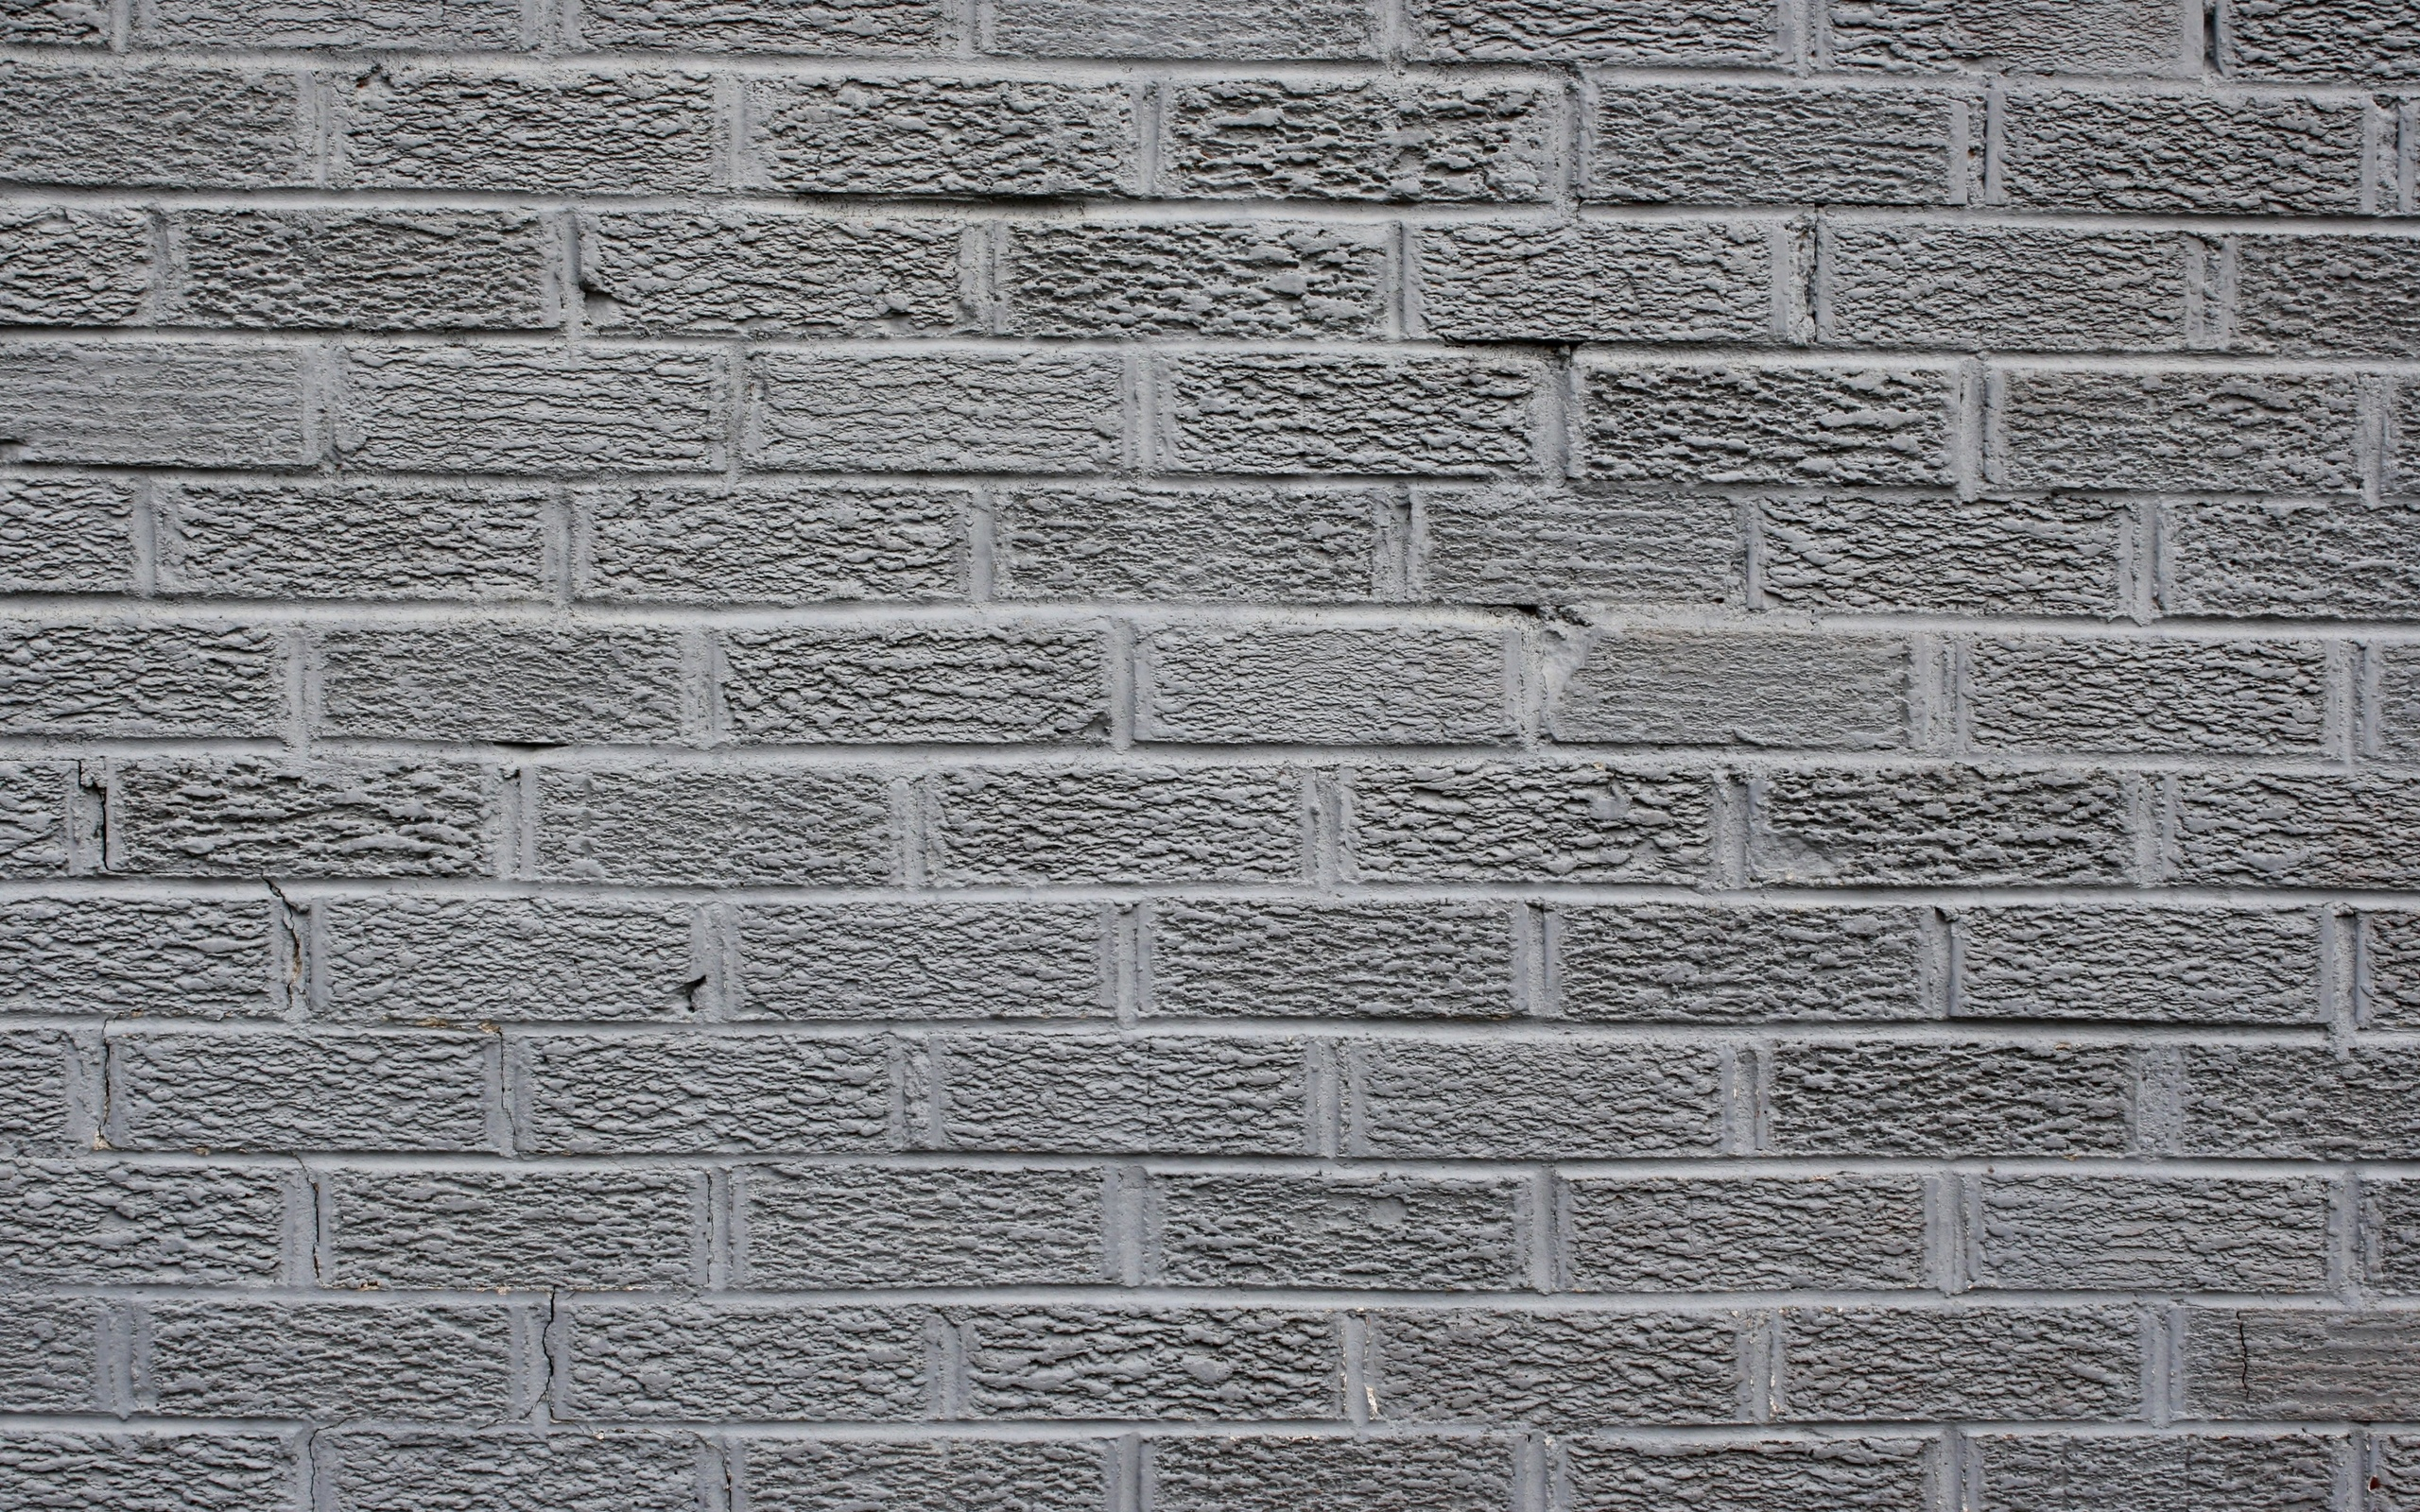 black and white brick wallpaper 2017 - Grasscloth Wallpaper